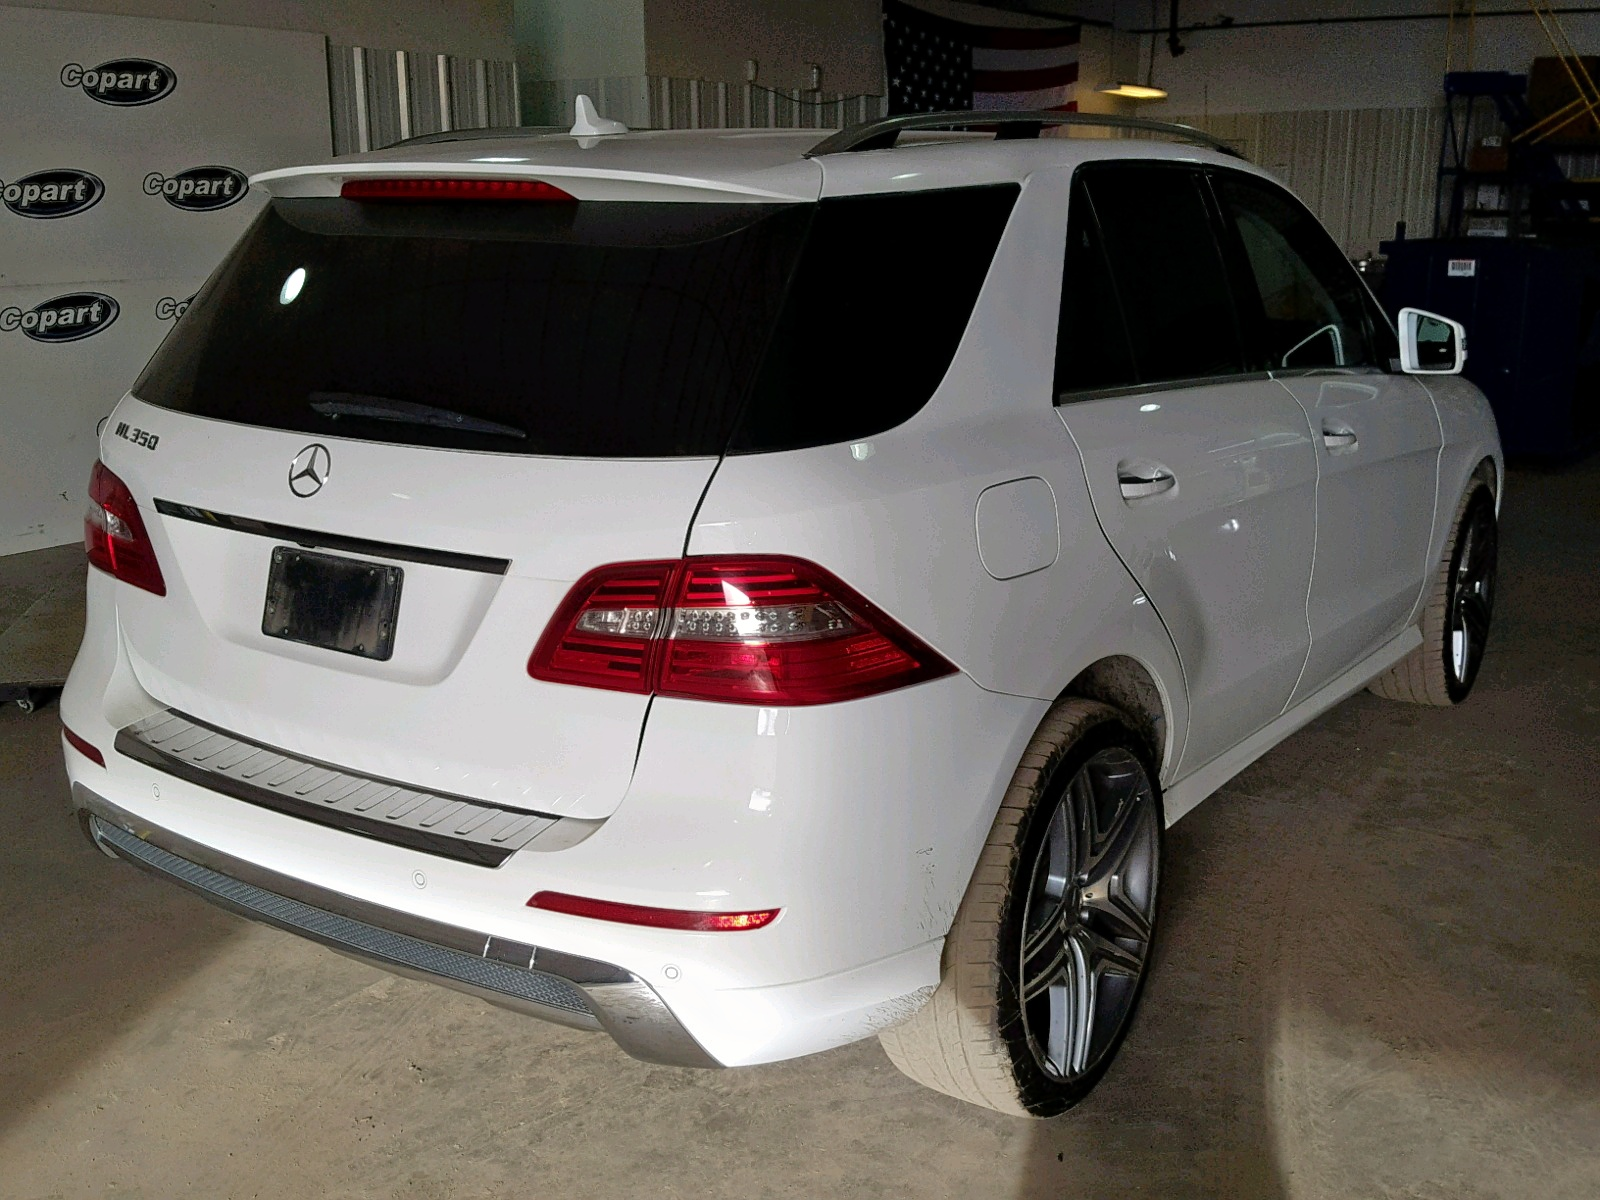 4JGDA5JB7EA343090 - 2014 Mercedes-Benz Ml 350 3.5L rear view